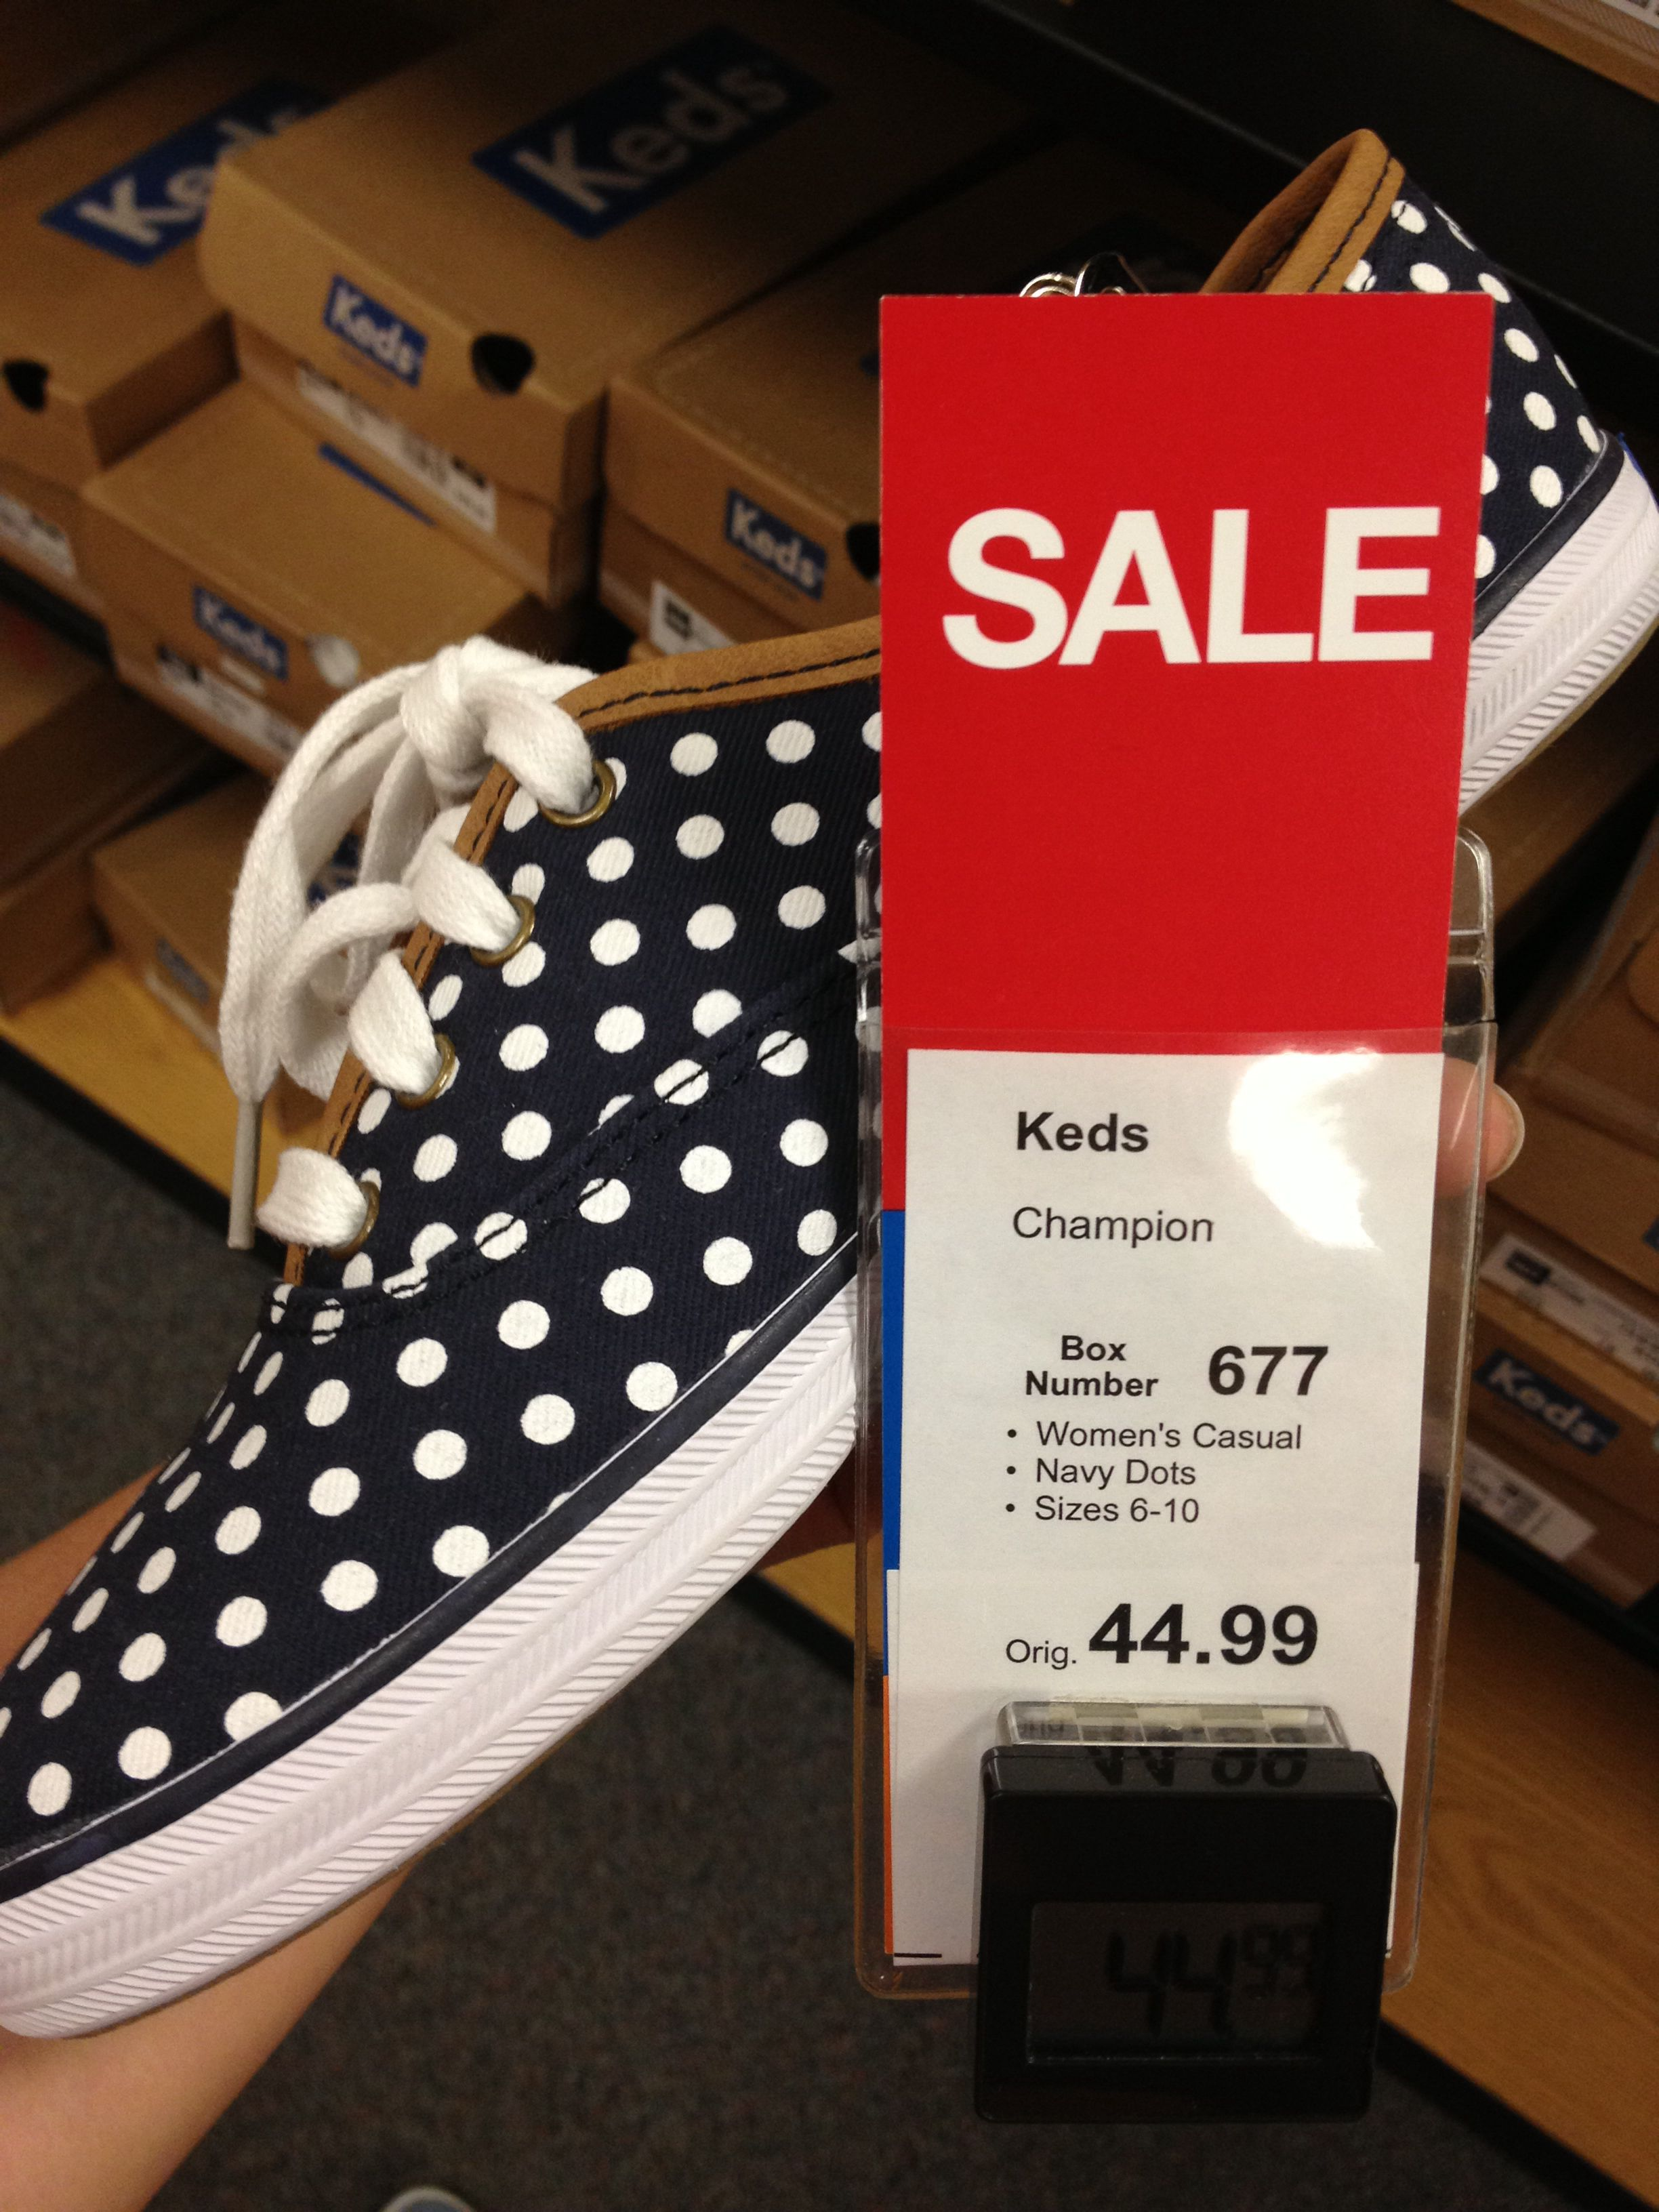 Love these keds: kohls or Payless/size